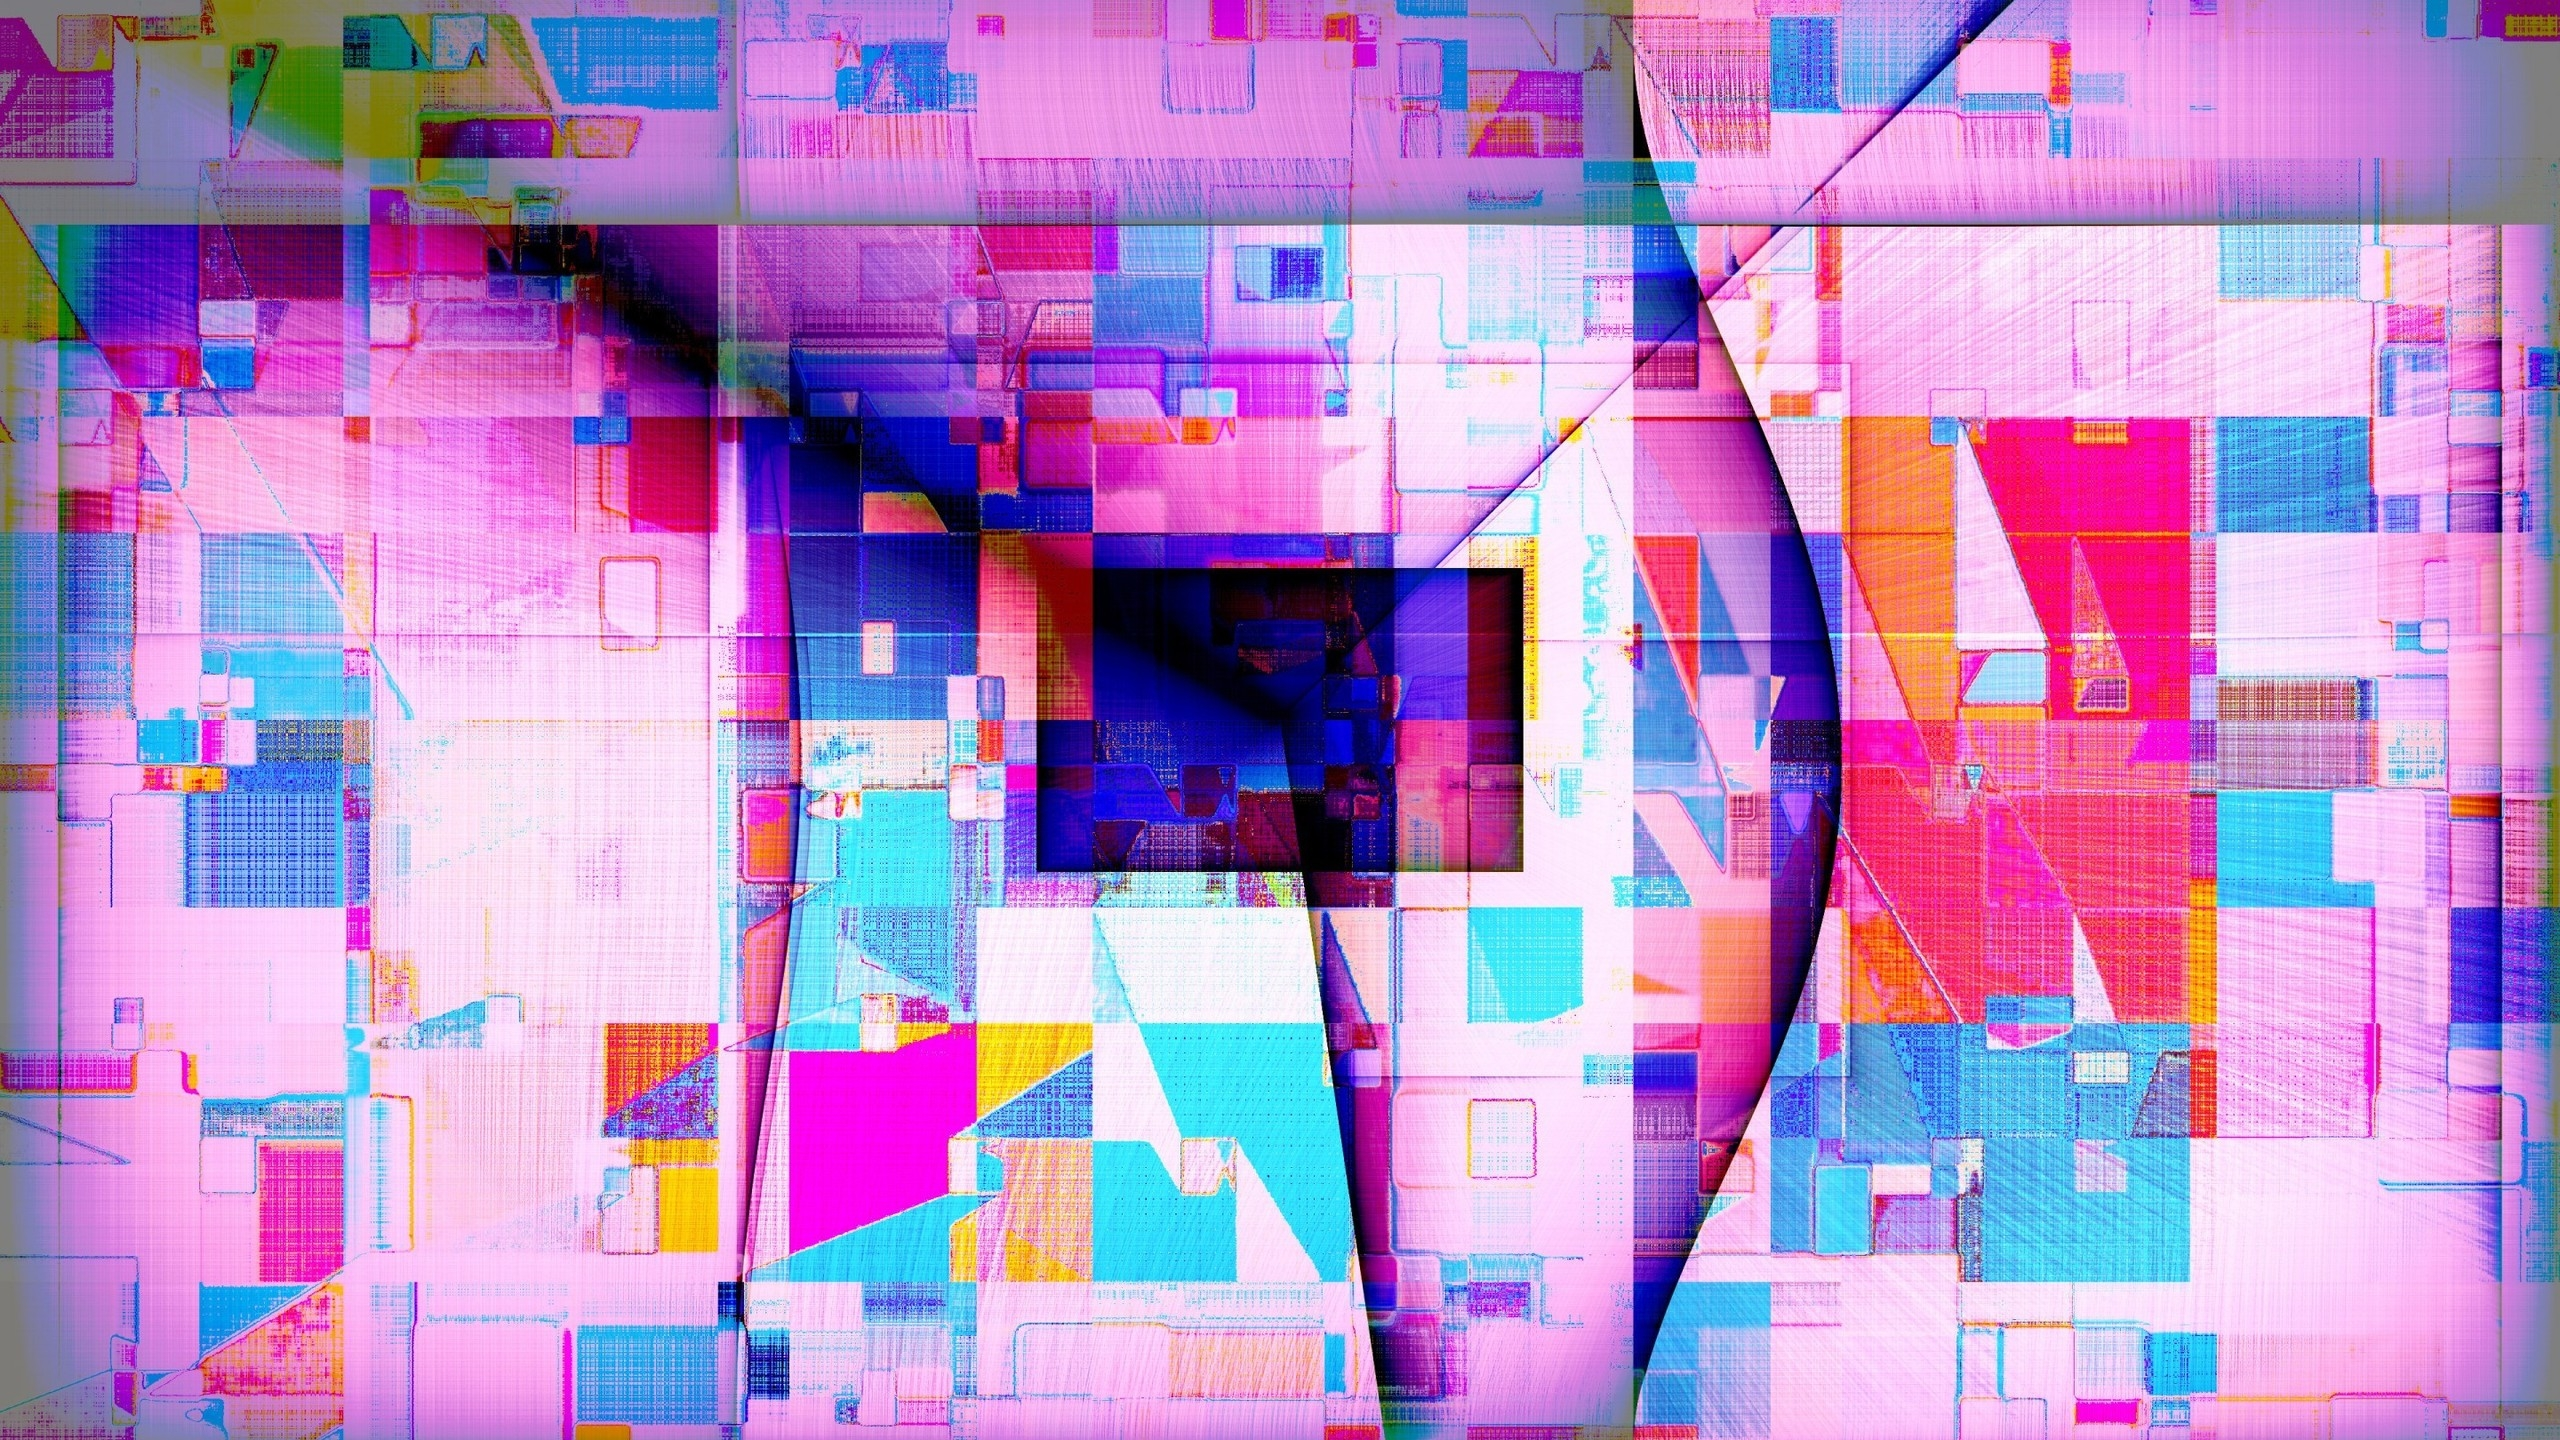 Colourful Abstract Shapes for 2560x1440 HDTV resolution